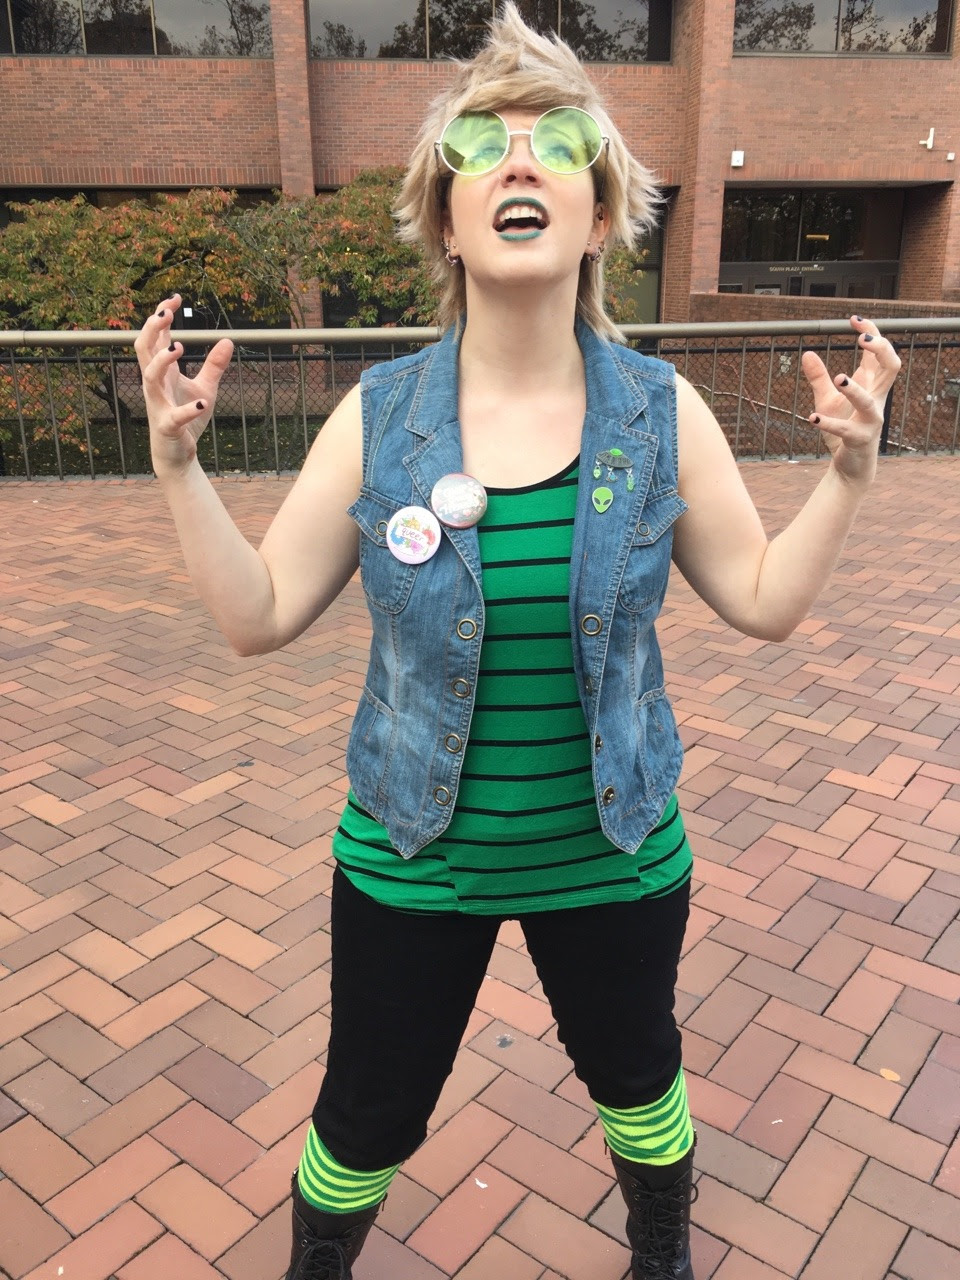 So excited to cosplay human!Peridot today at Sherlock Seattle!!!